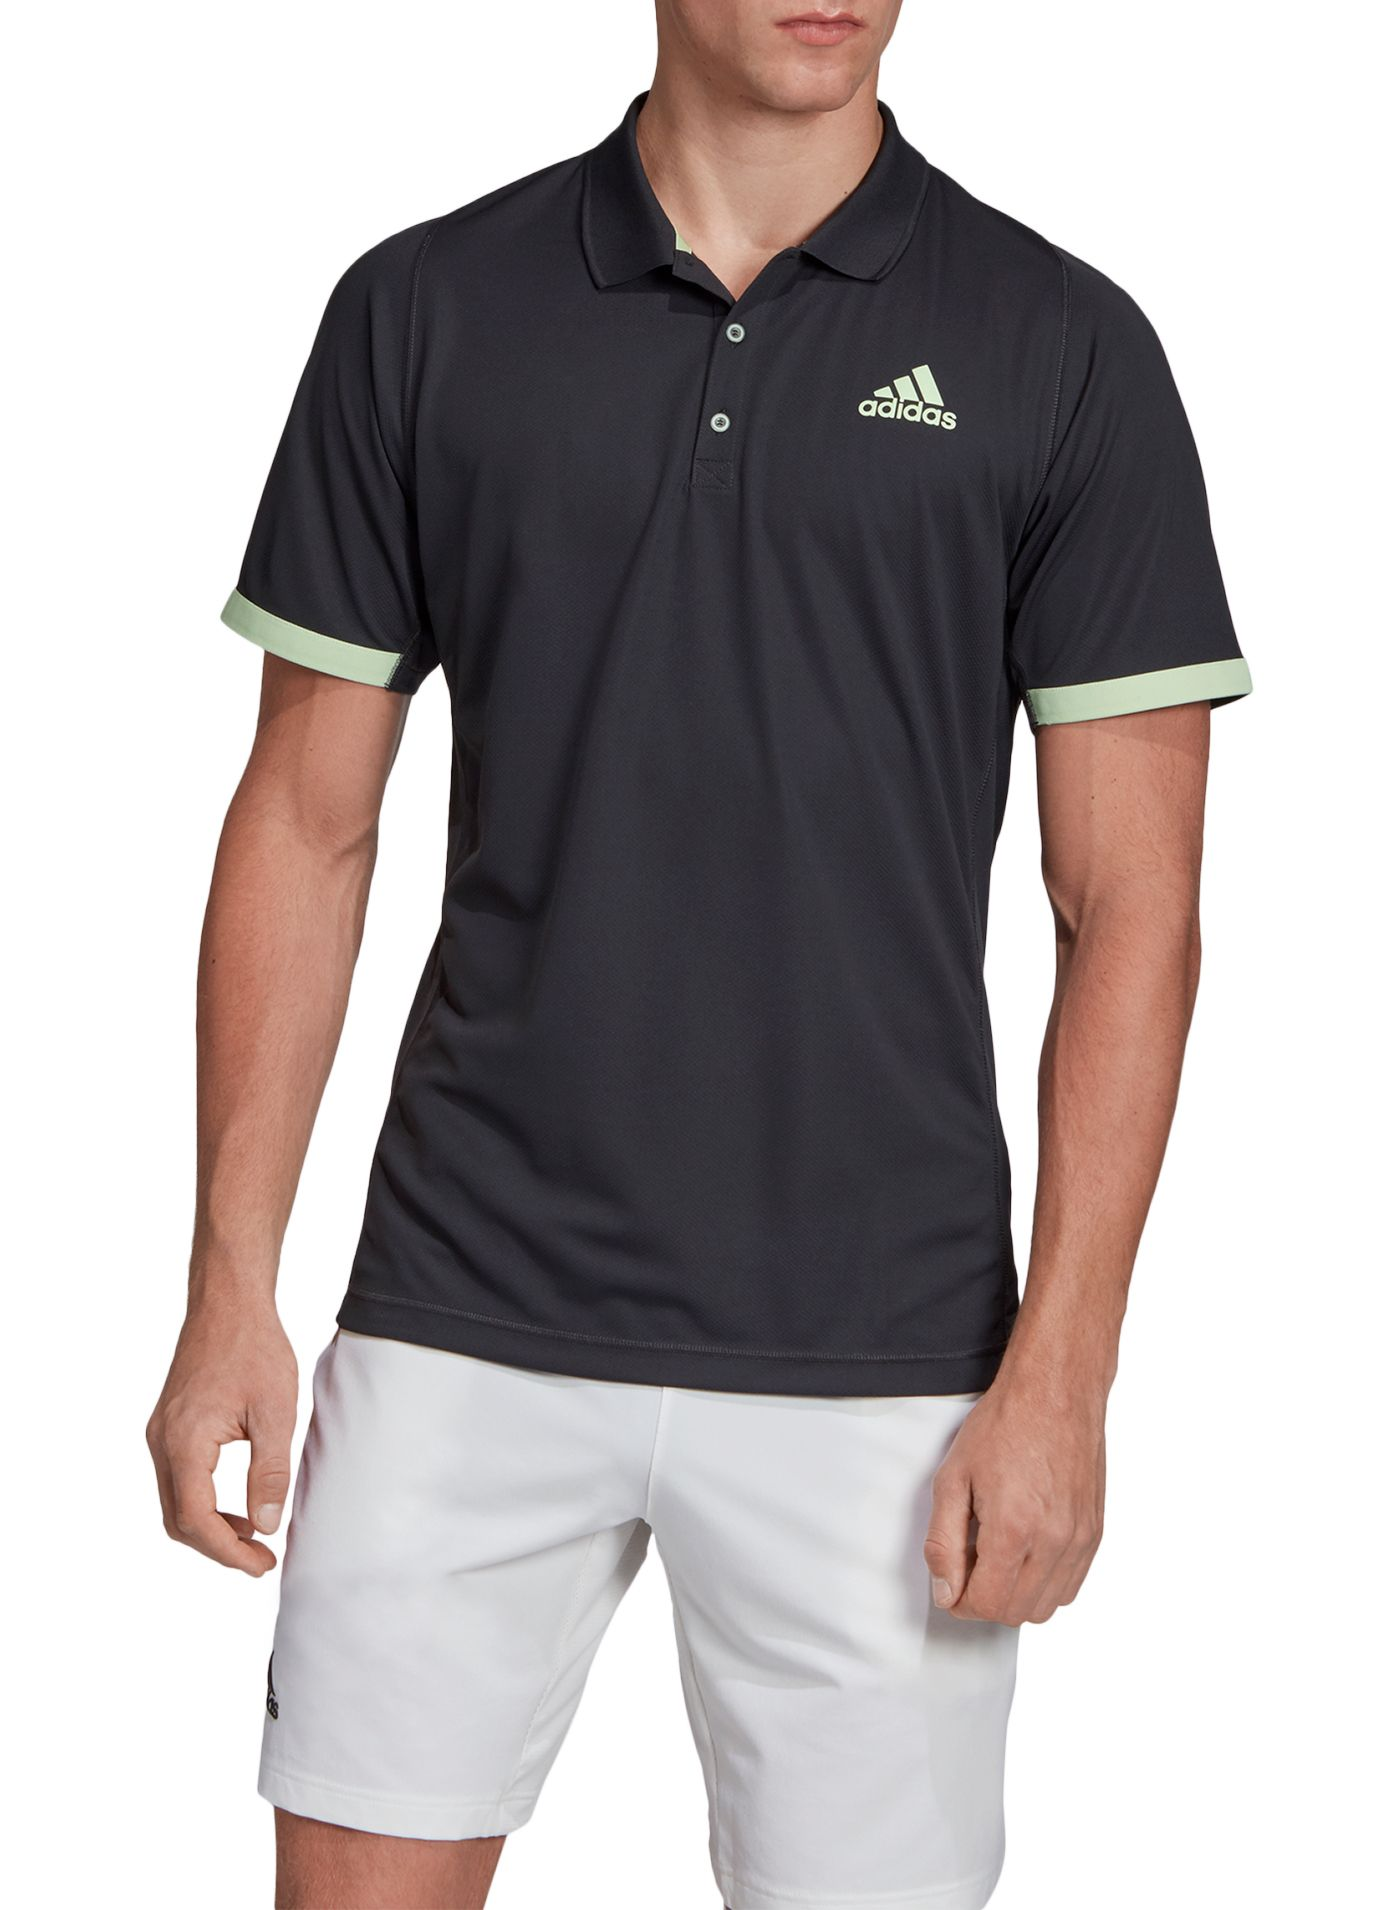 adidas Men's New York Tennis Polo